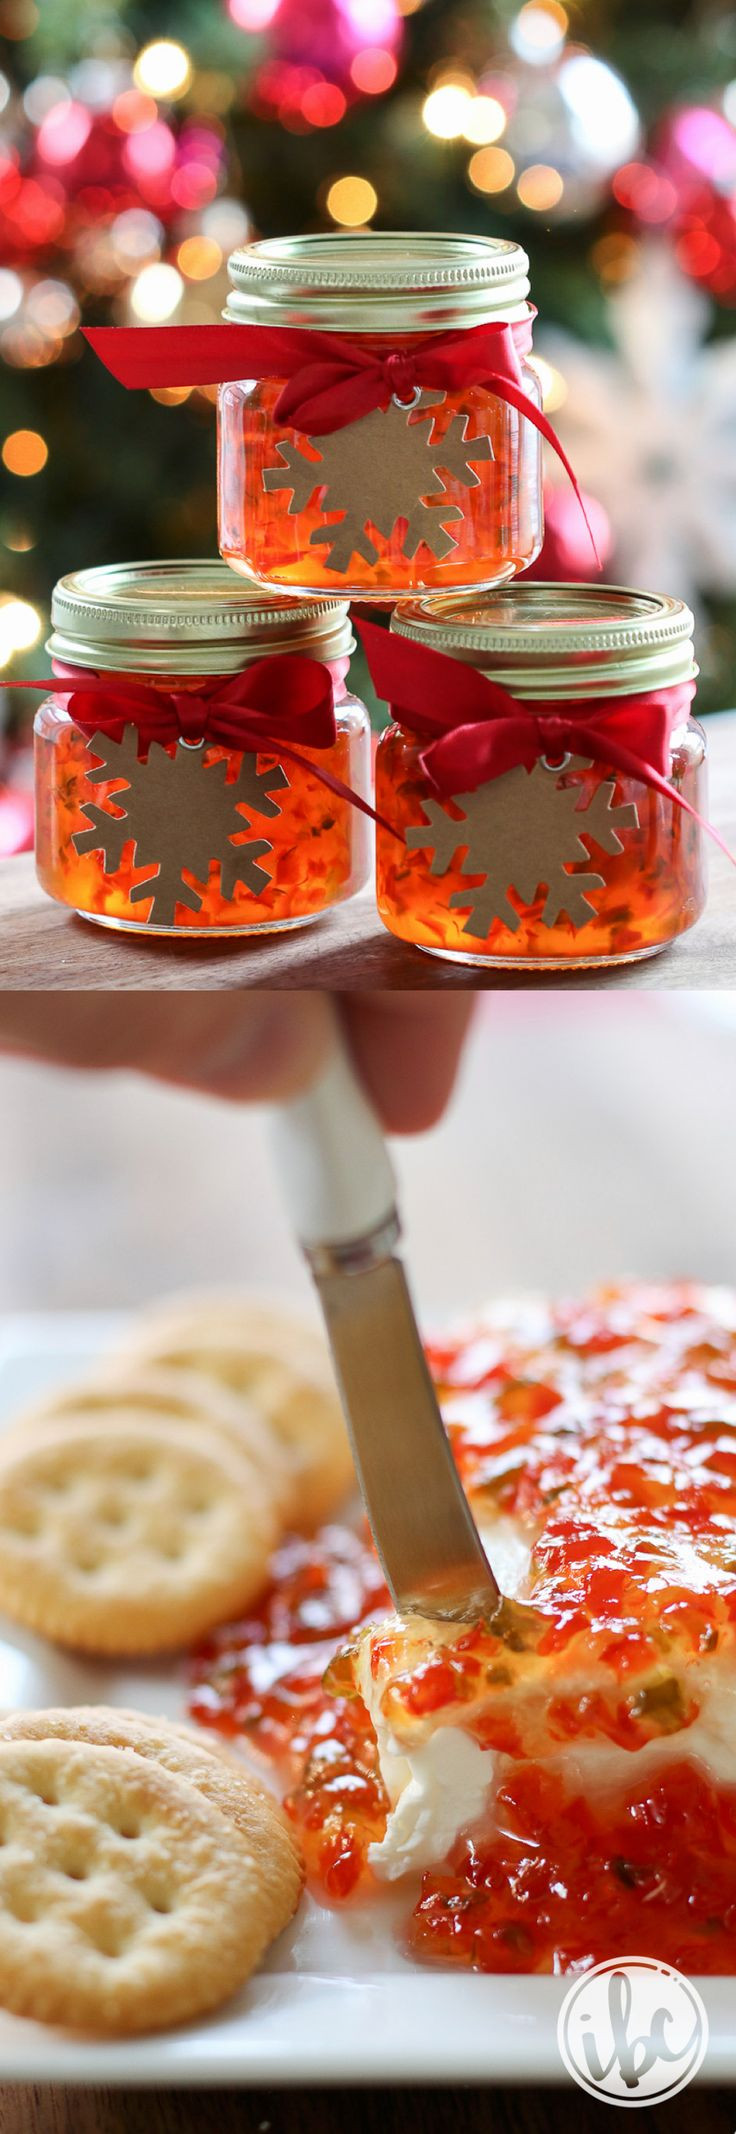 Recipe For Christmas Appetizers  25 best ideas about Christmas appetizers on Pinterest